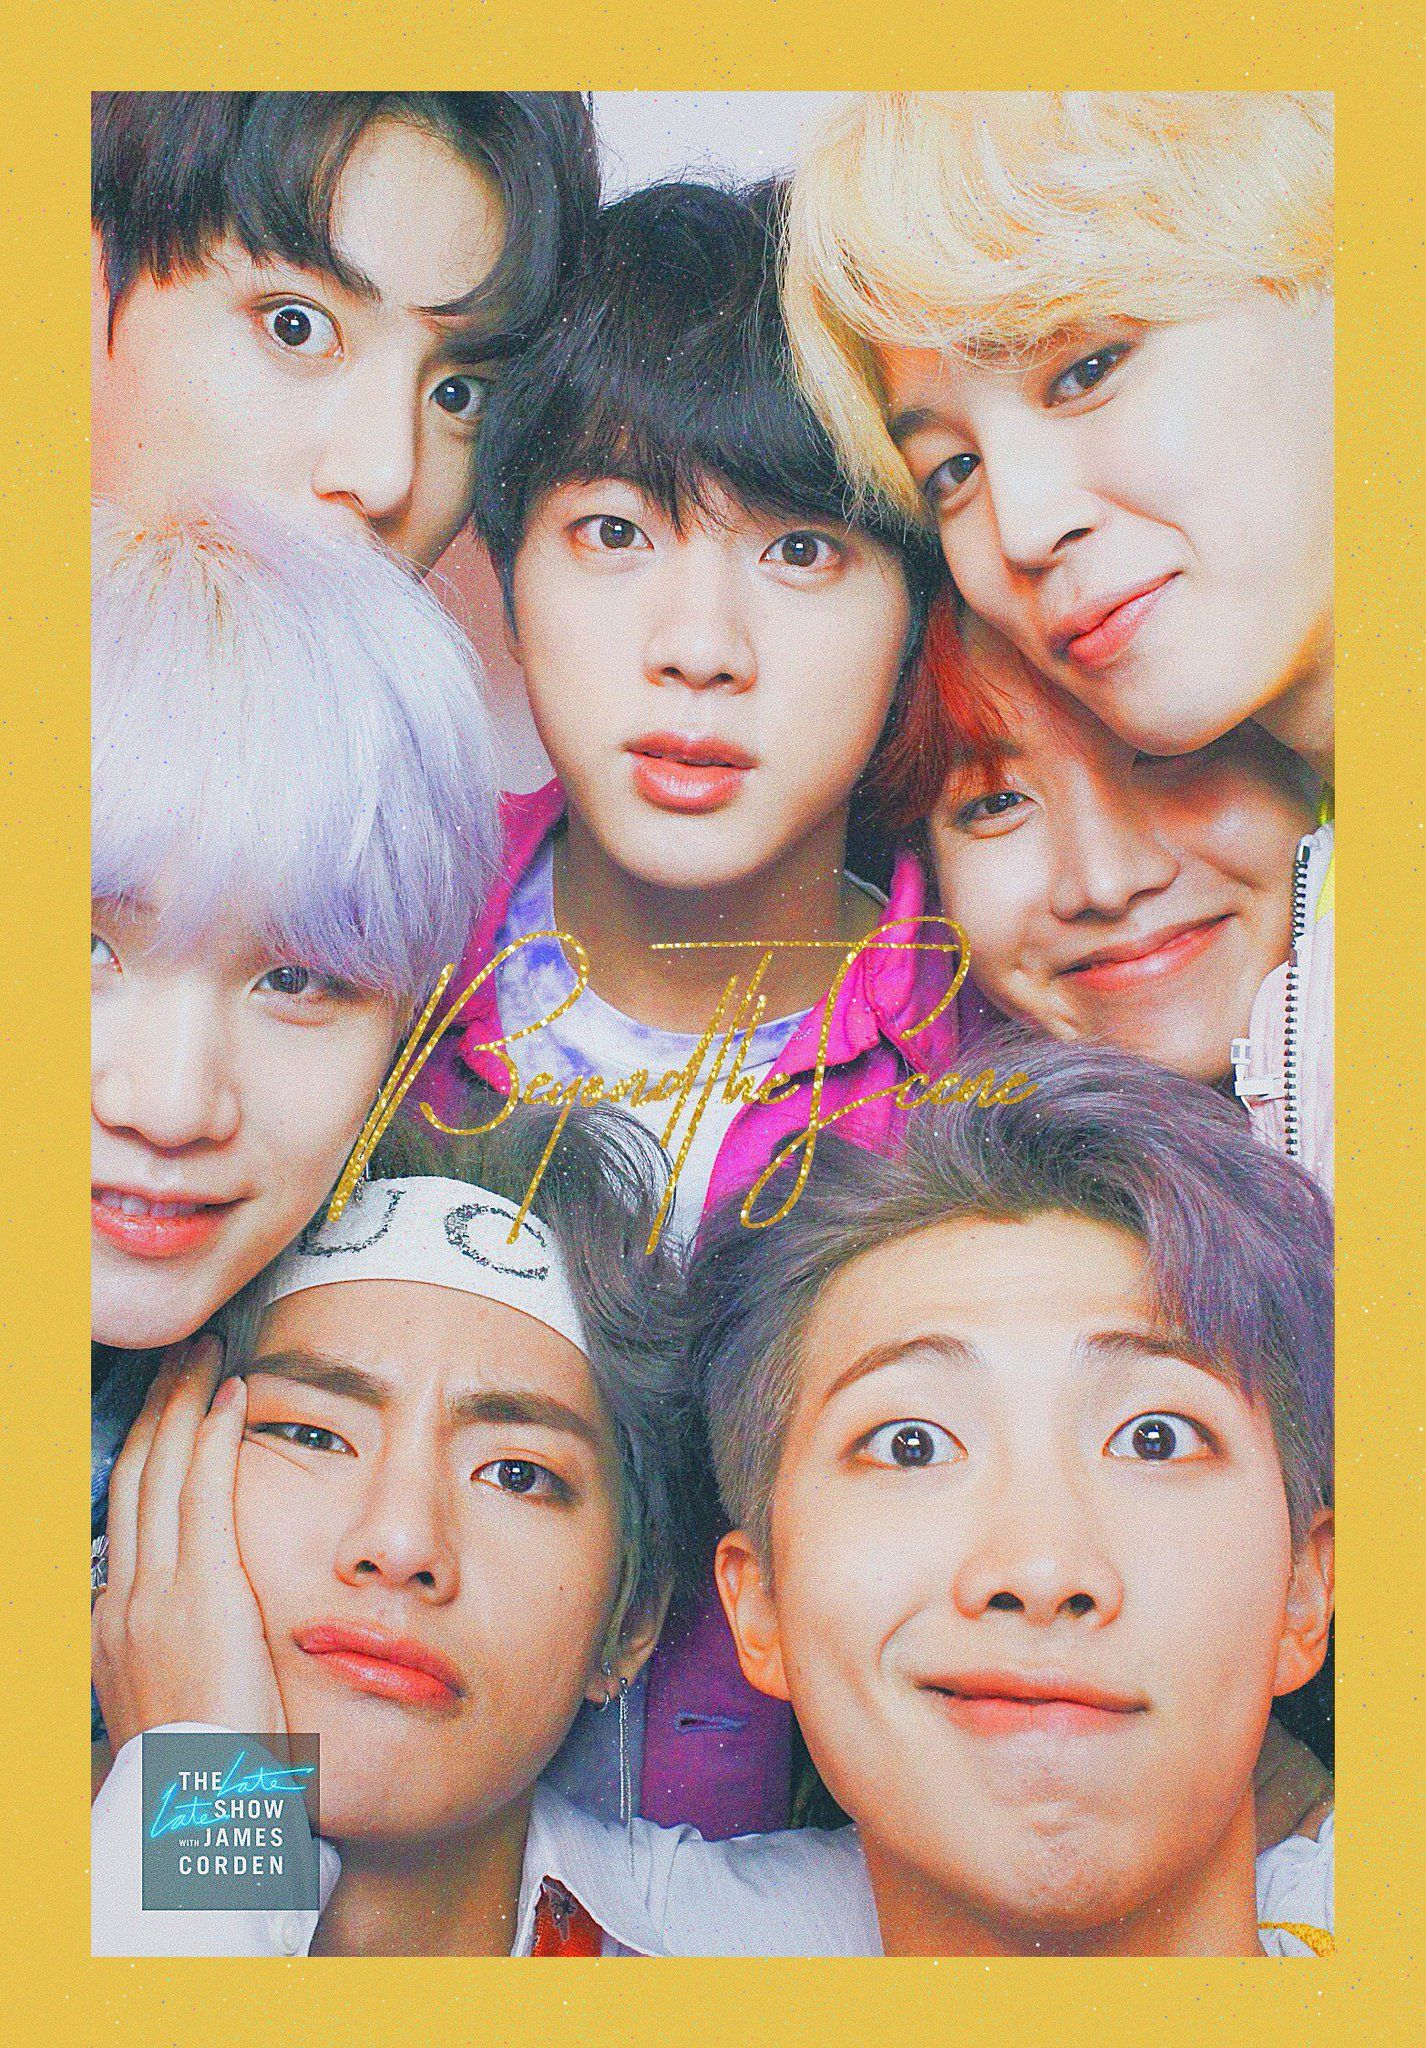 Twitter (With images) | Bts wallpaper. Bts aesthetic pictures. Bts pictures